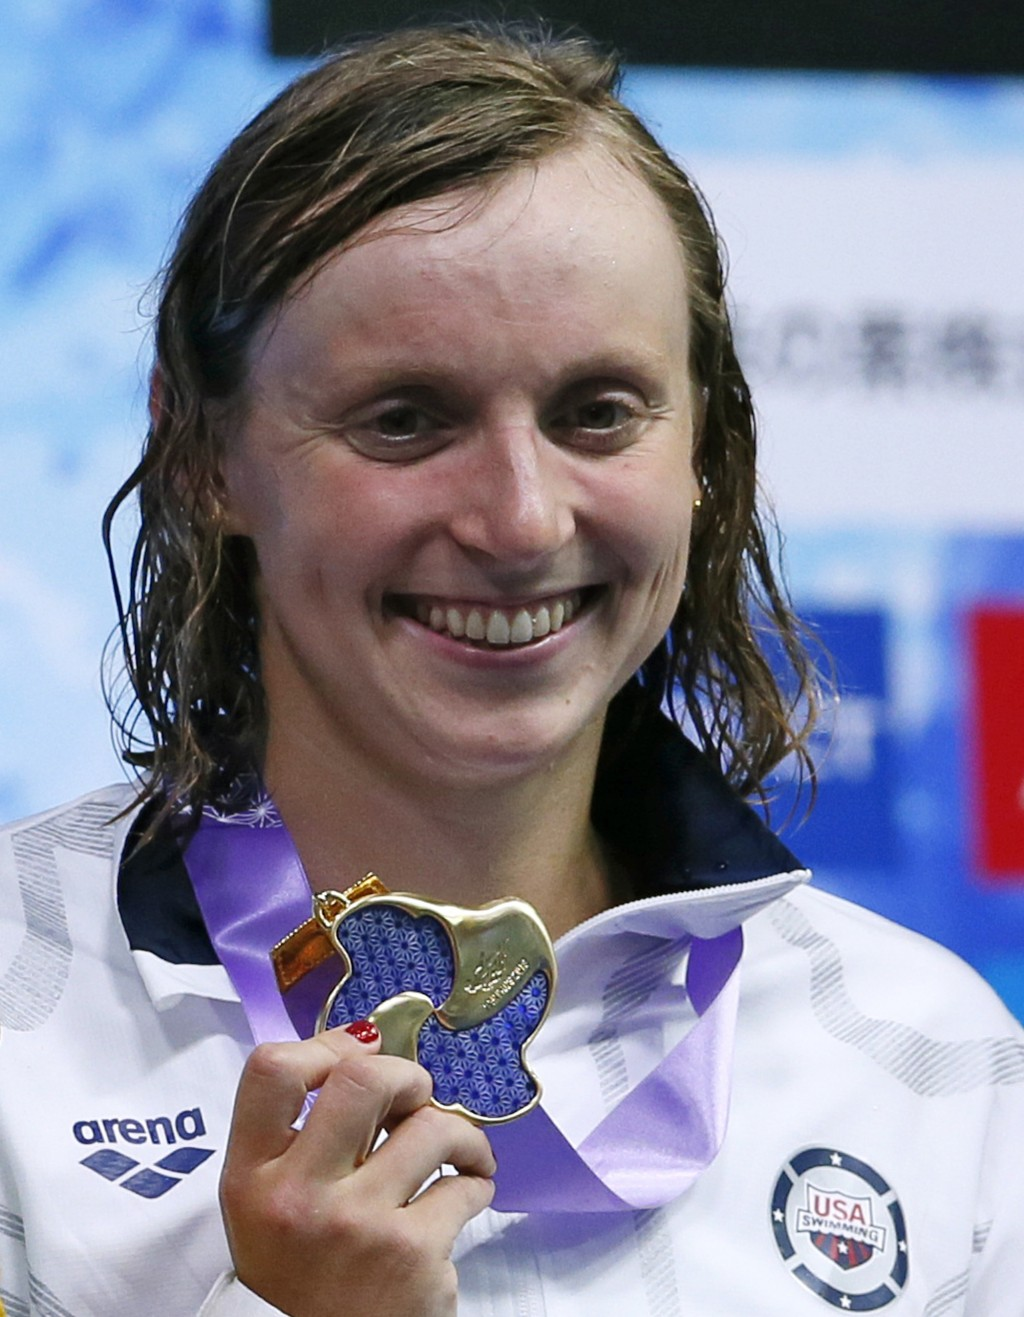 U.S. swimmer Katie Ledecky poses with her medal on the podium after winning the women's 400m freestyle final during the Pan Pacific swimming champions